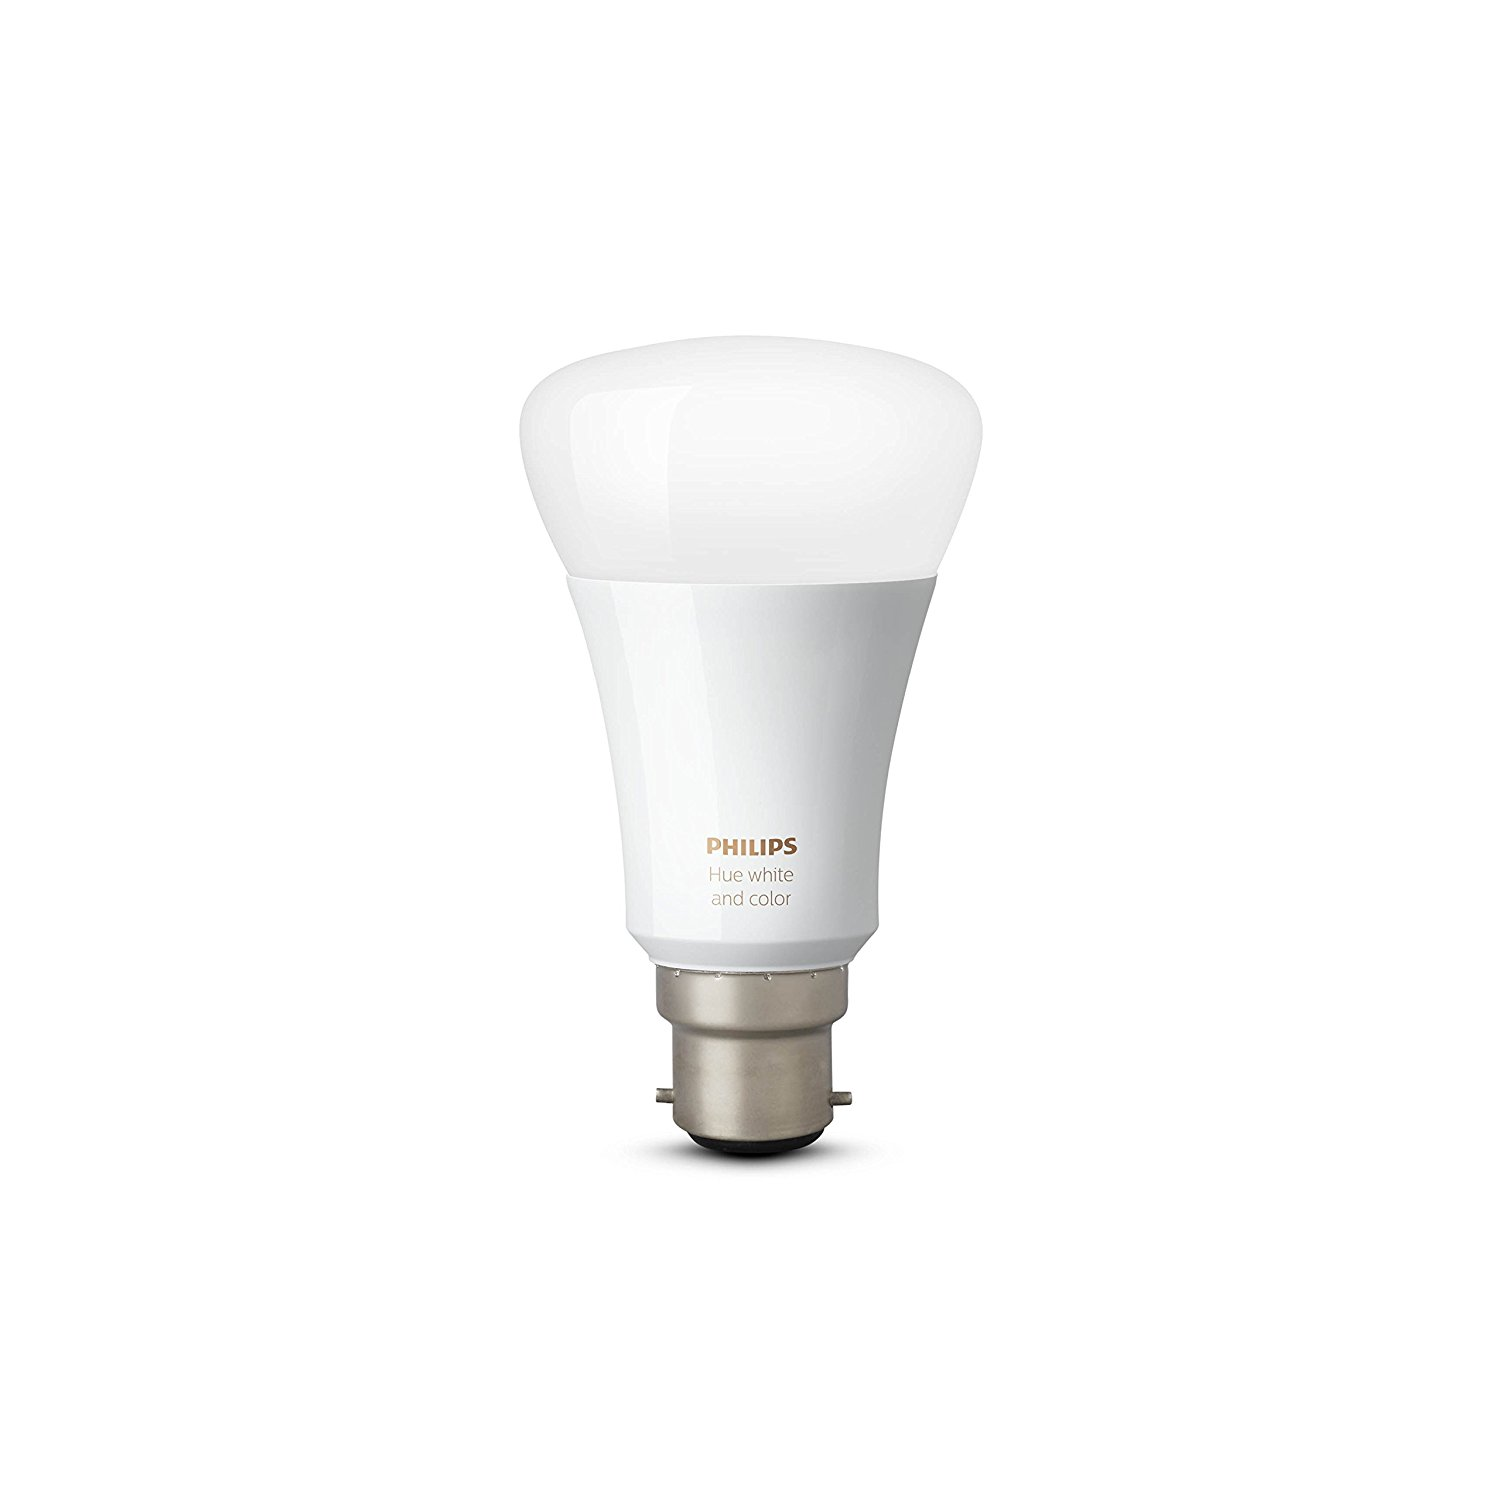 Buy Philips Hue 9w Led Colour Ambiance Wireless B22 Light Bulb Wiring A Colours Smart Lighting Argos